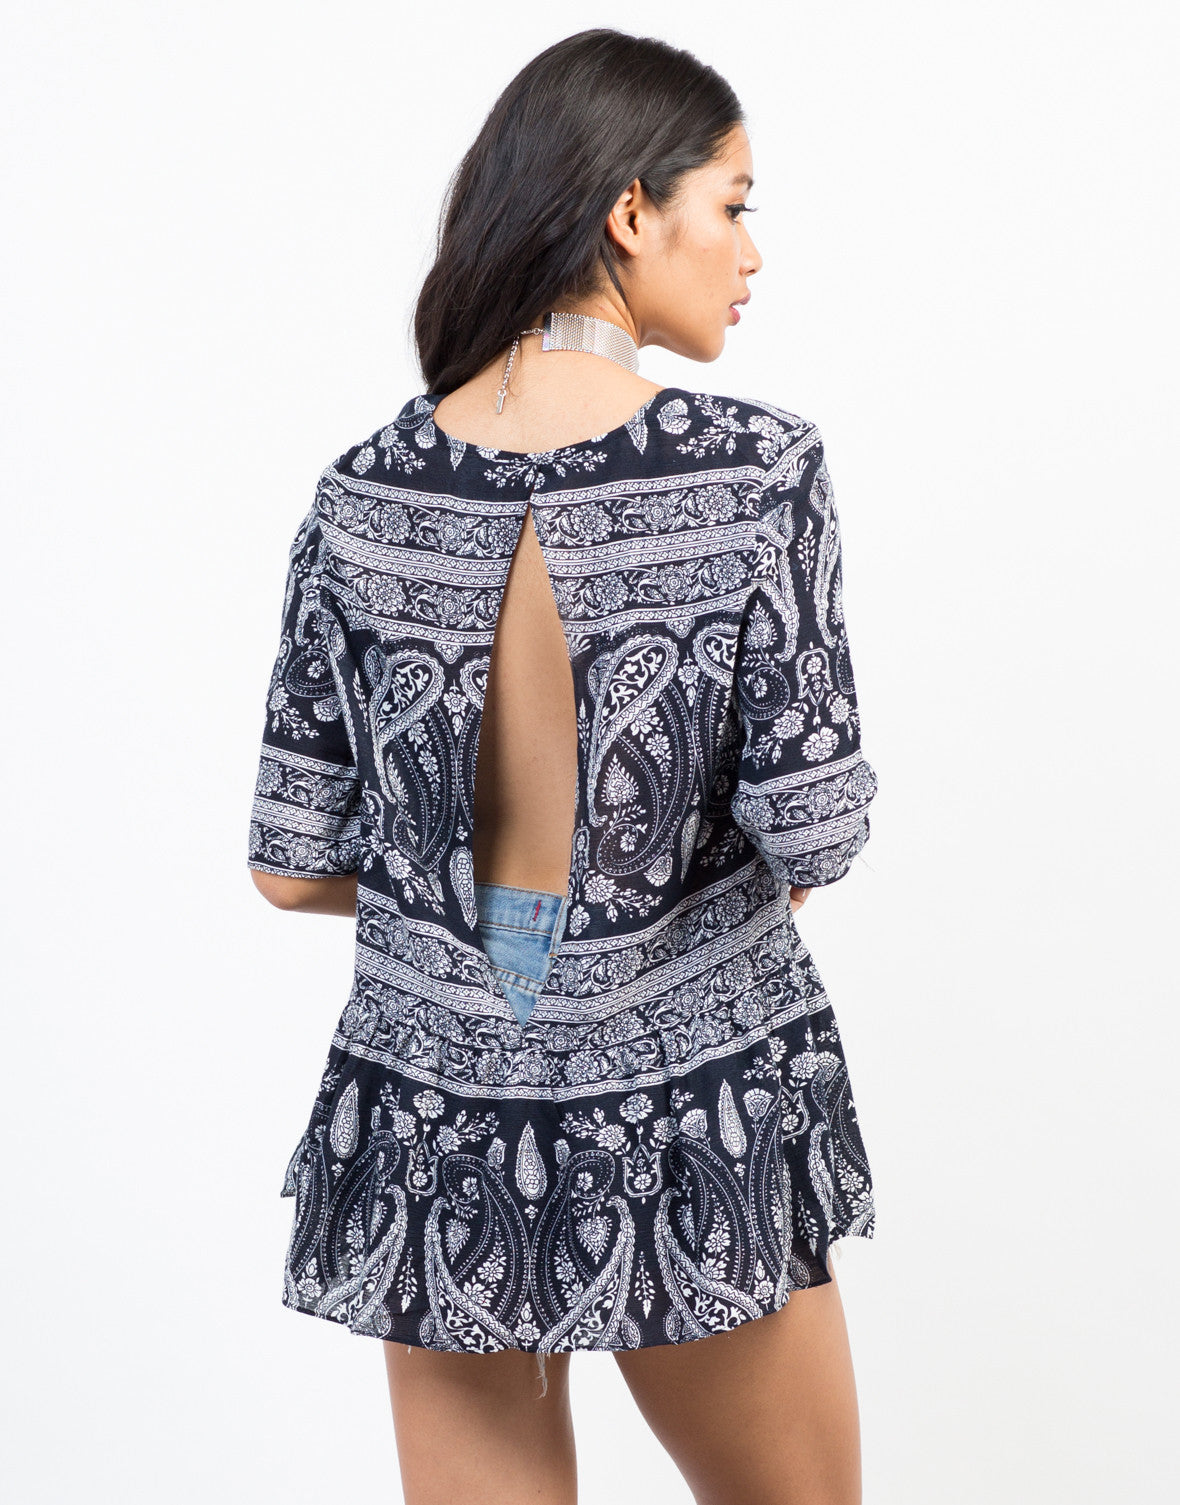 Back View of Paisley Vacay Top